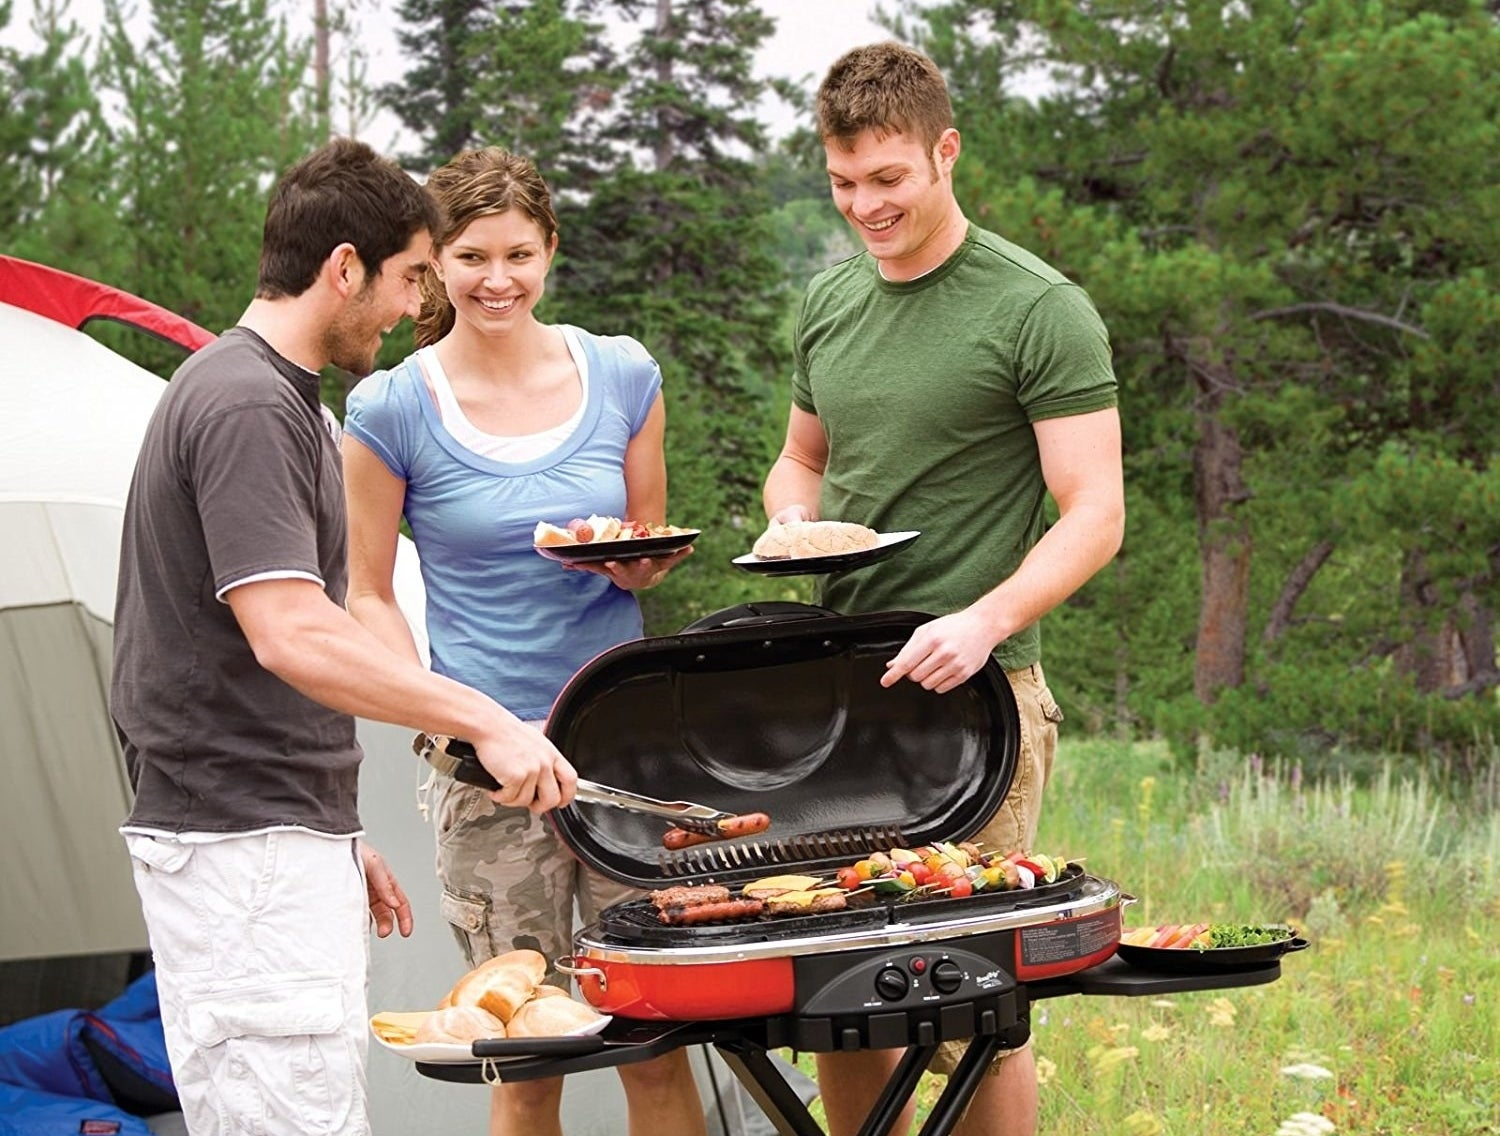 """Delivers 20,000 BTUs of heat across 285 square inches of grilling surface. Instastart button ignites grill without the need for a match or lighter. Easily folds to a transportable, compact size.Promising review: """"Bought for a gift for my hubby and he loves it. He can grill our whole family's dinner when we camp and yet it's so compact, that it stores very easily. Just fold it up!"""" —HeatherGet it from Amazon for $146.33+ (available in eight colors)."""